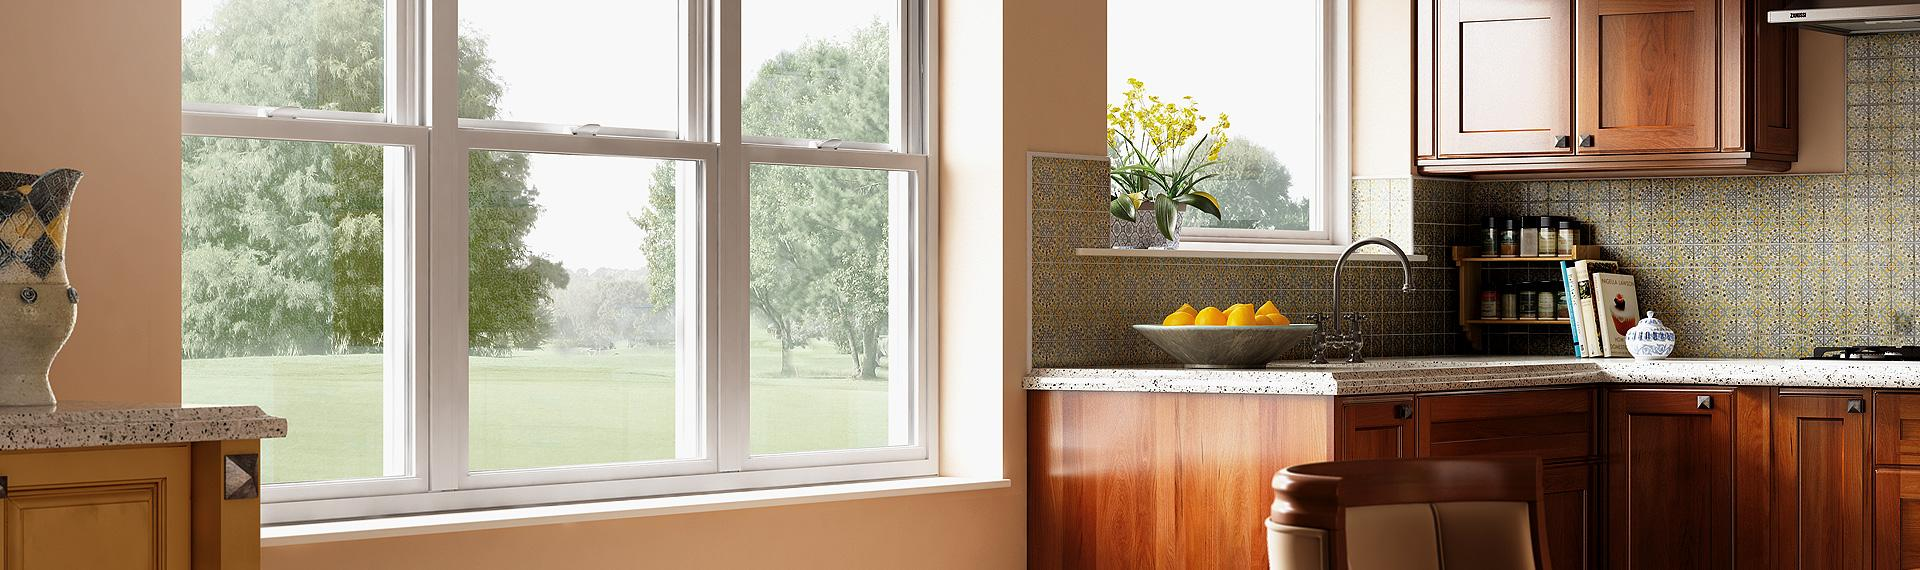 Hermosa Series vinyl single hung tilt windows